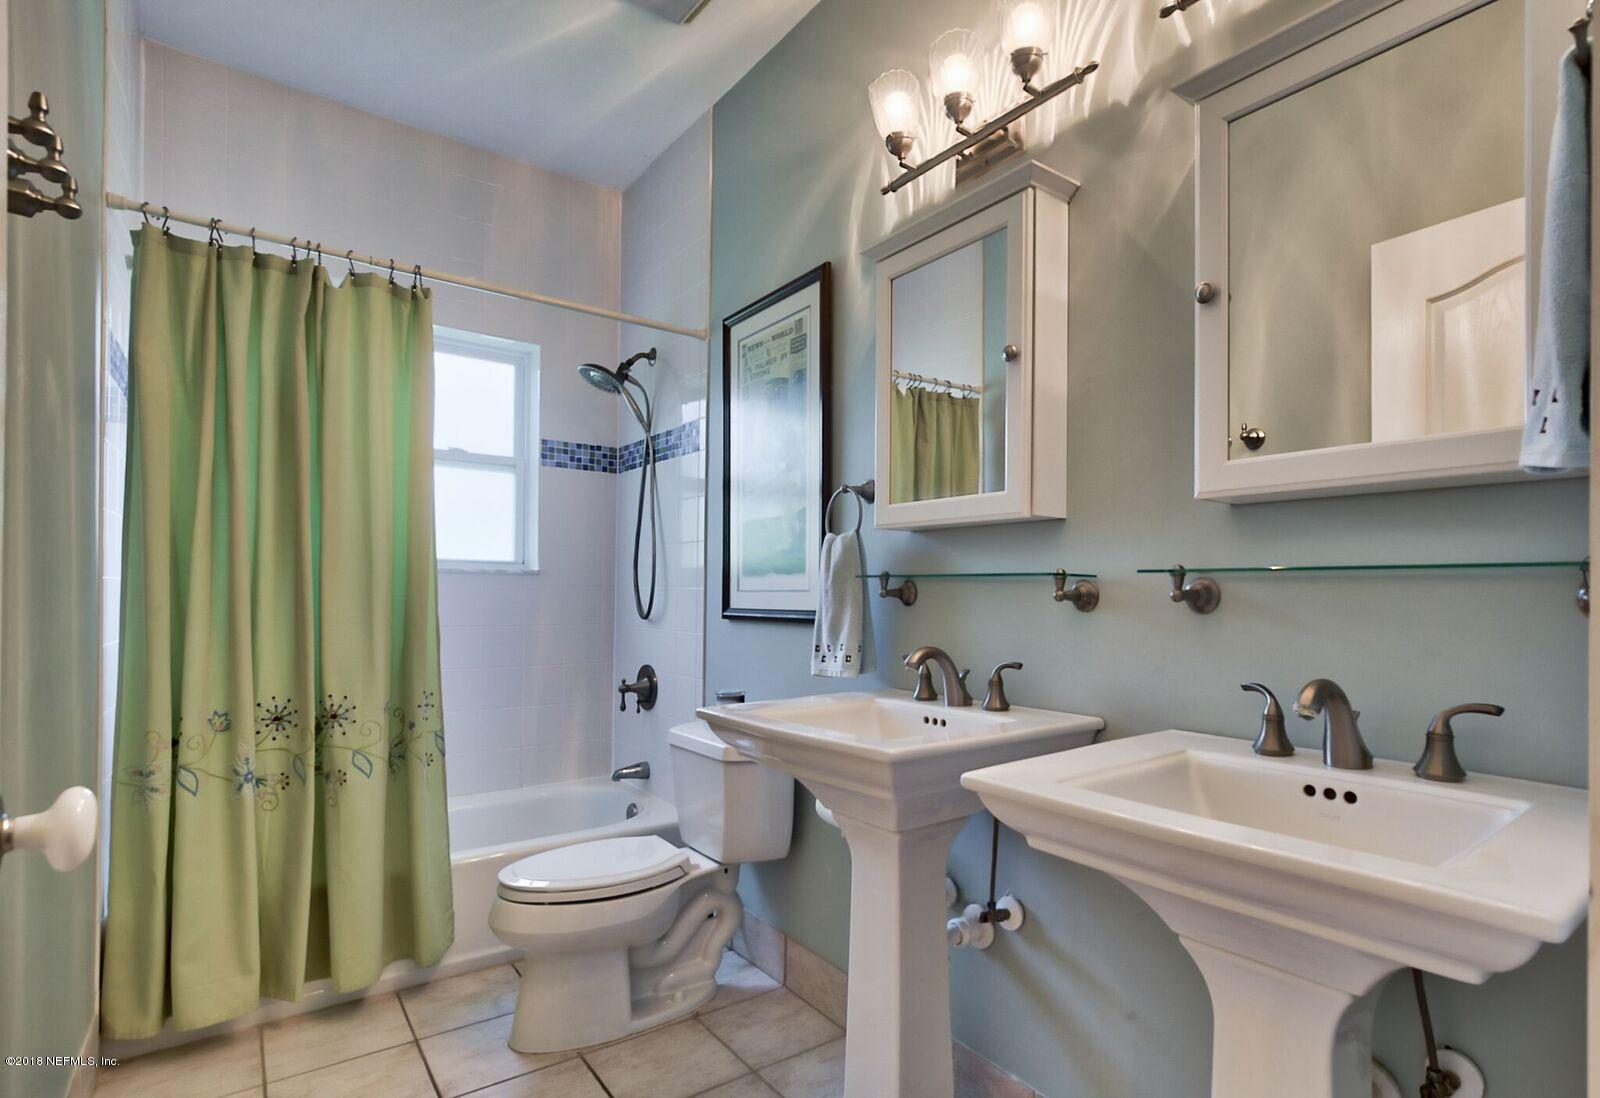 386 7TH, ATLANTIC BEACH, FLORIDA 32233, 4 Bedrooms Bedrooms, ,2 BathroomsBathrooms,Residential - single family,For sale,7TH,959760